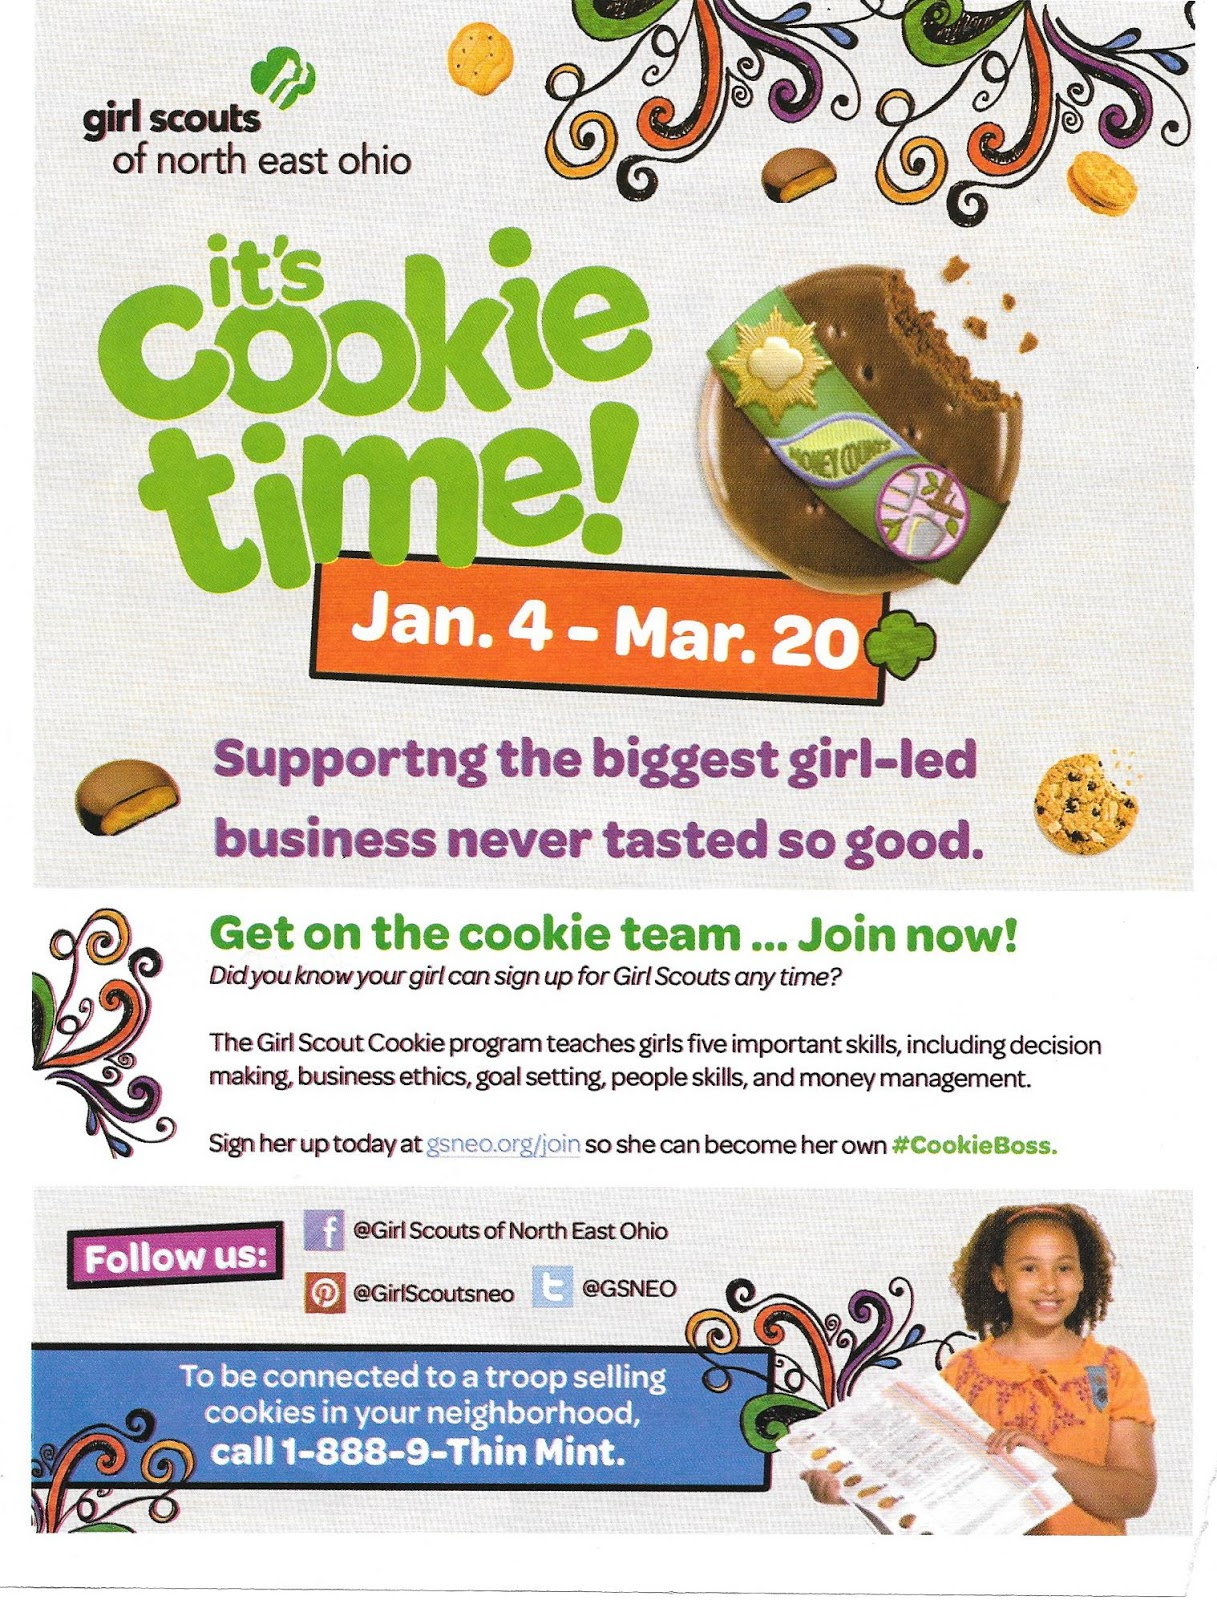 kidding around girl scout cookie time